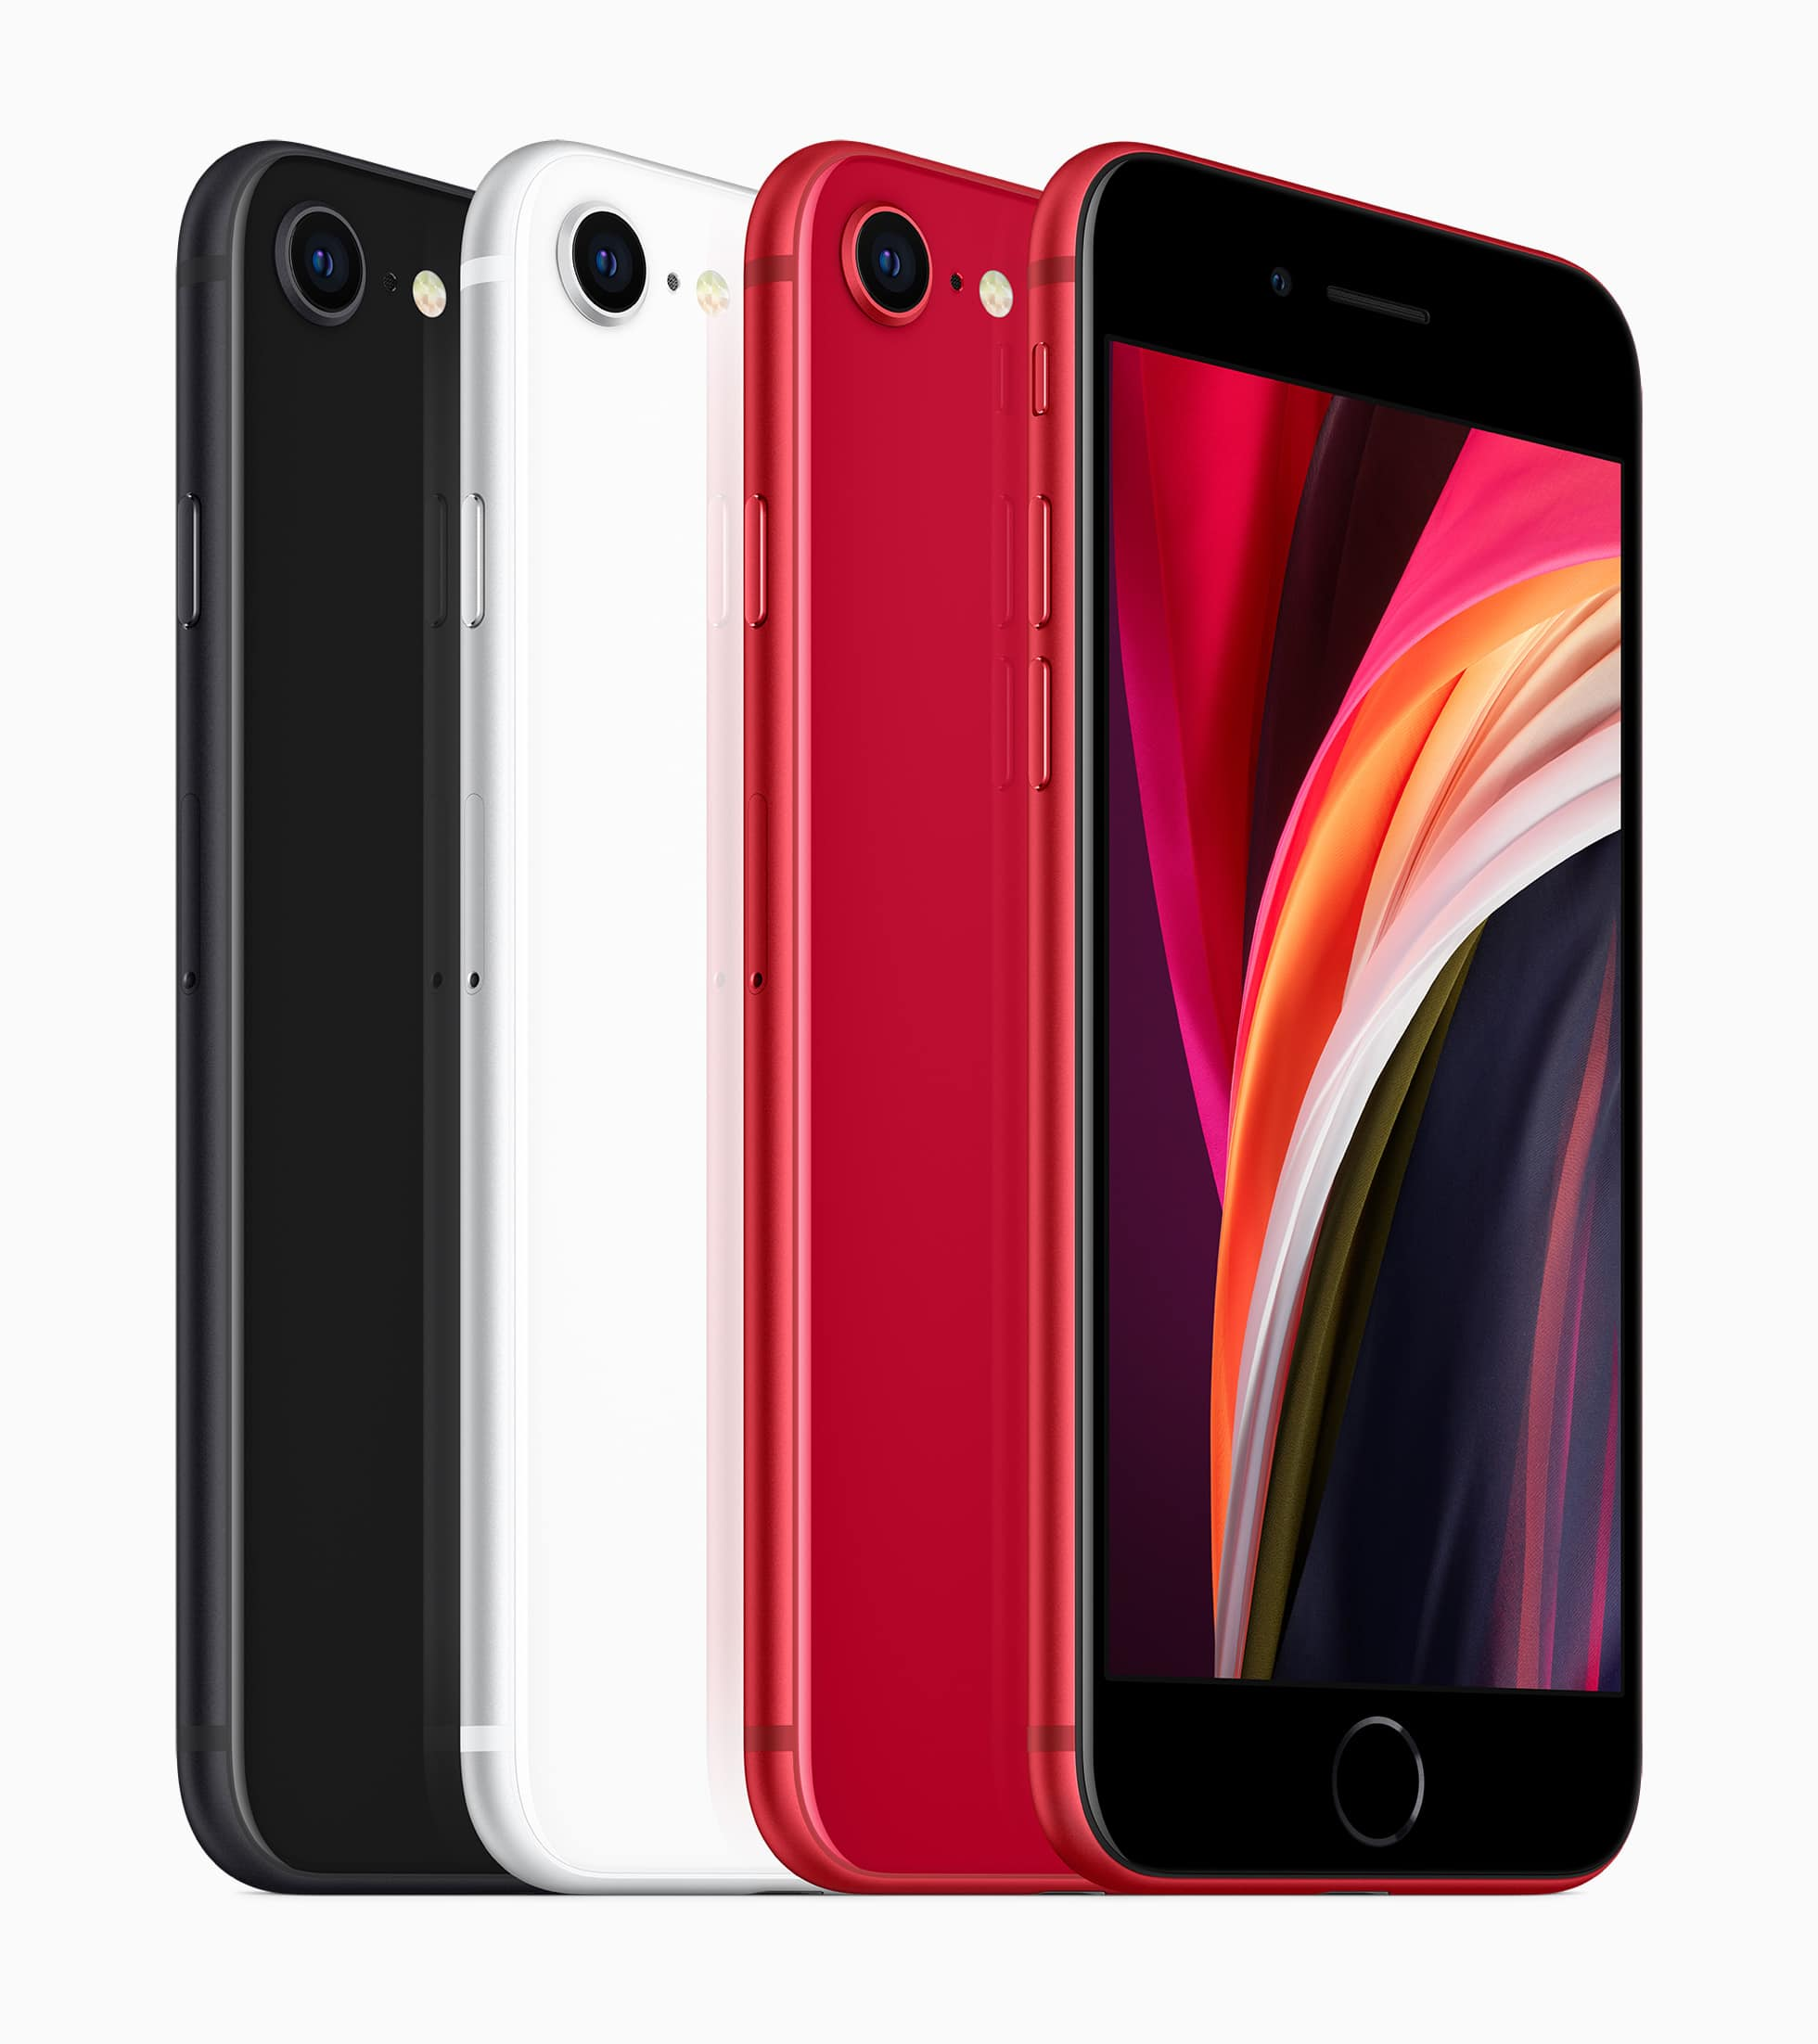 Apple_new-iphone-se-black-white-product-red-colors_04152020-2